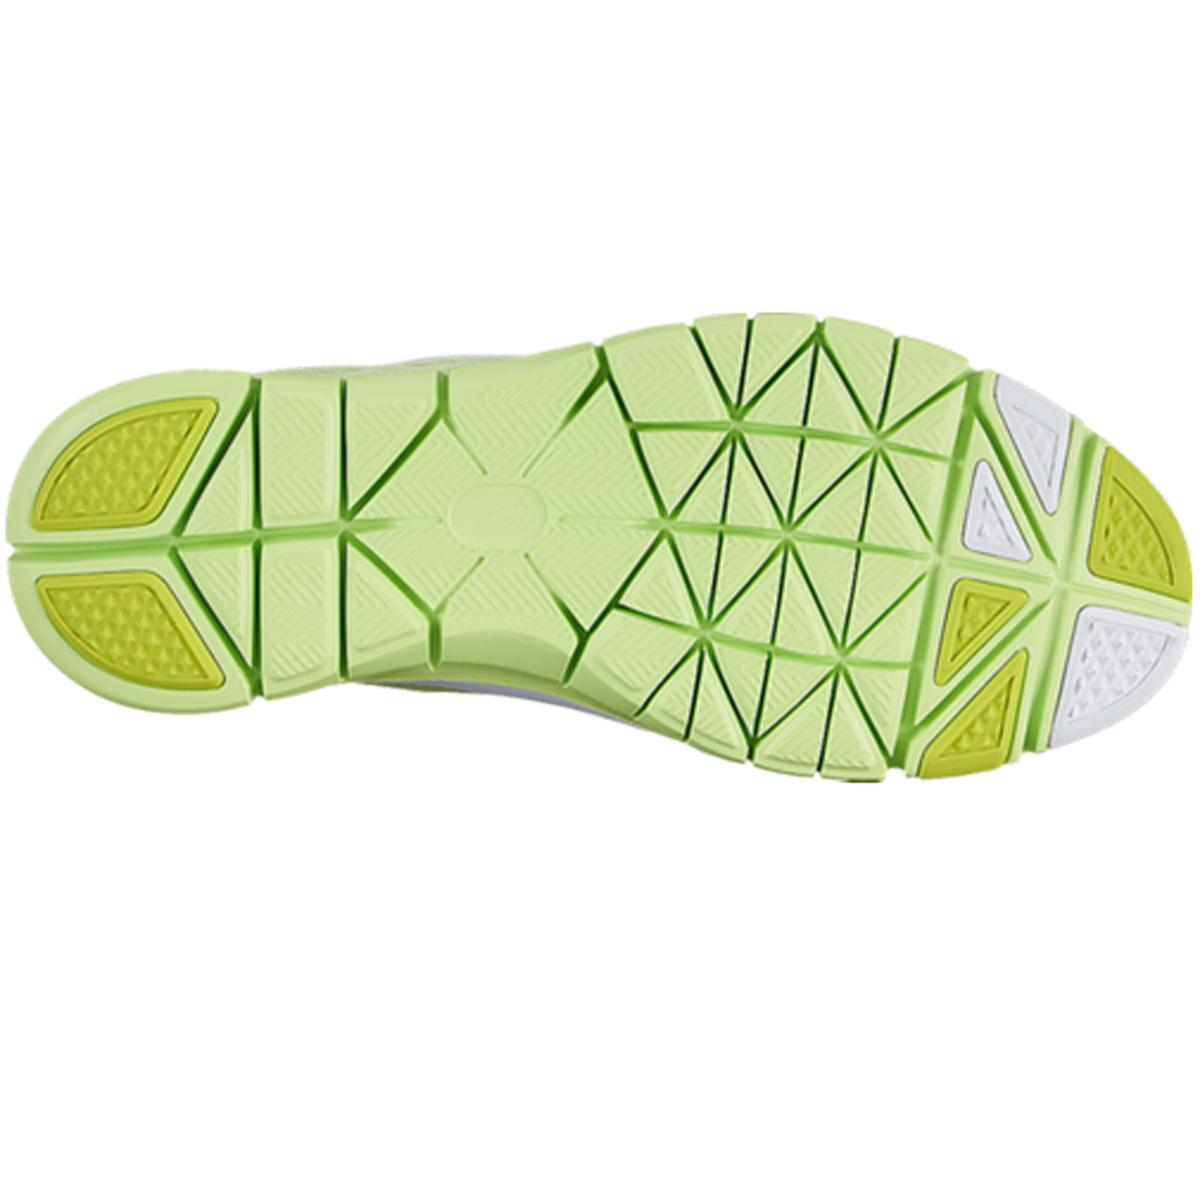 reputable site cbff9 0e118 Nike Womens Free 5.0 TR Fit 4 Breath Training Shoes - Lime Green